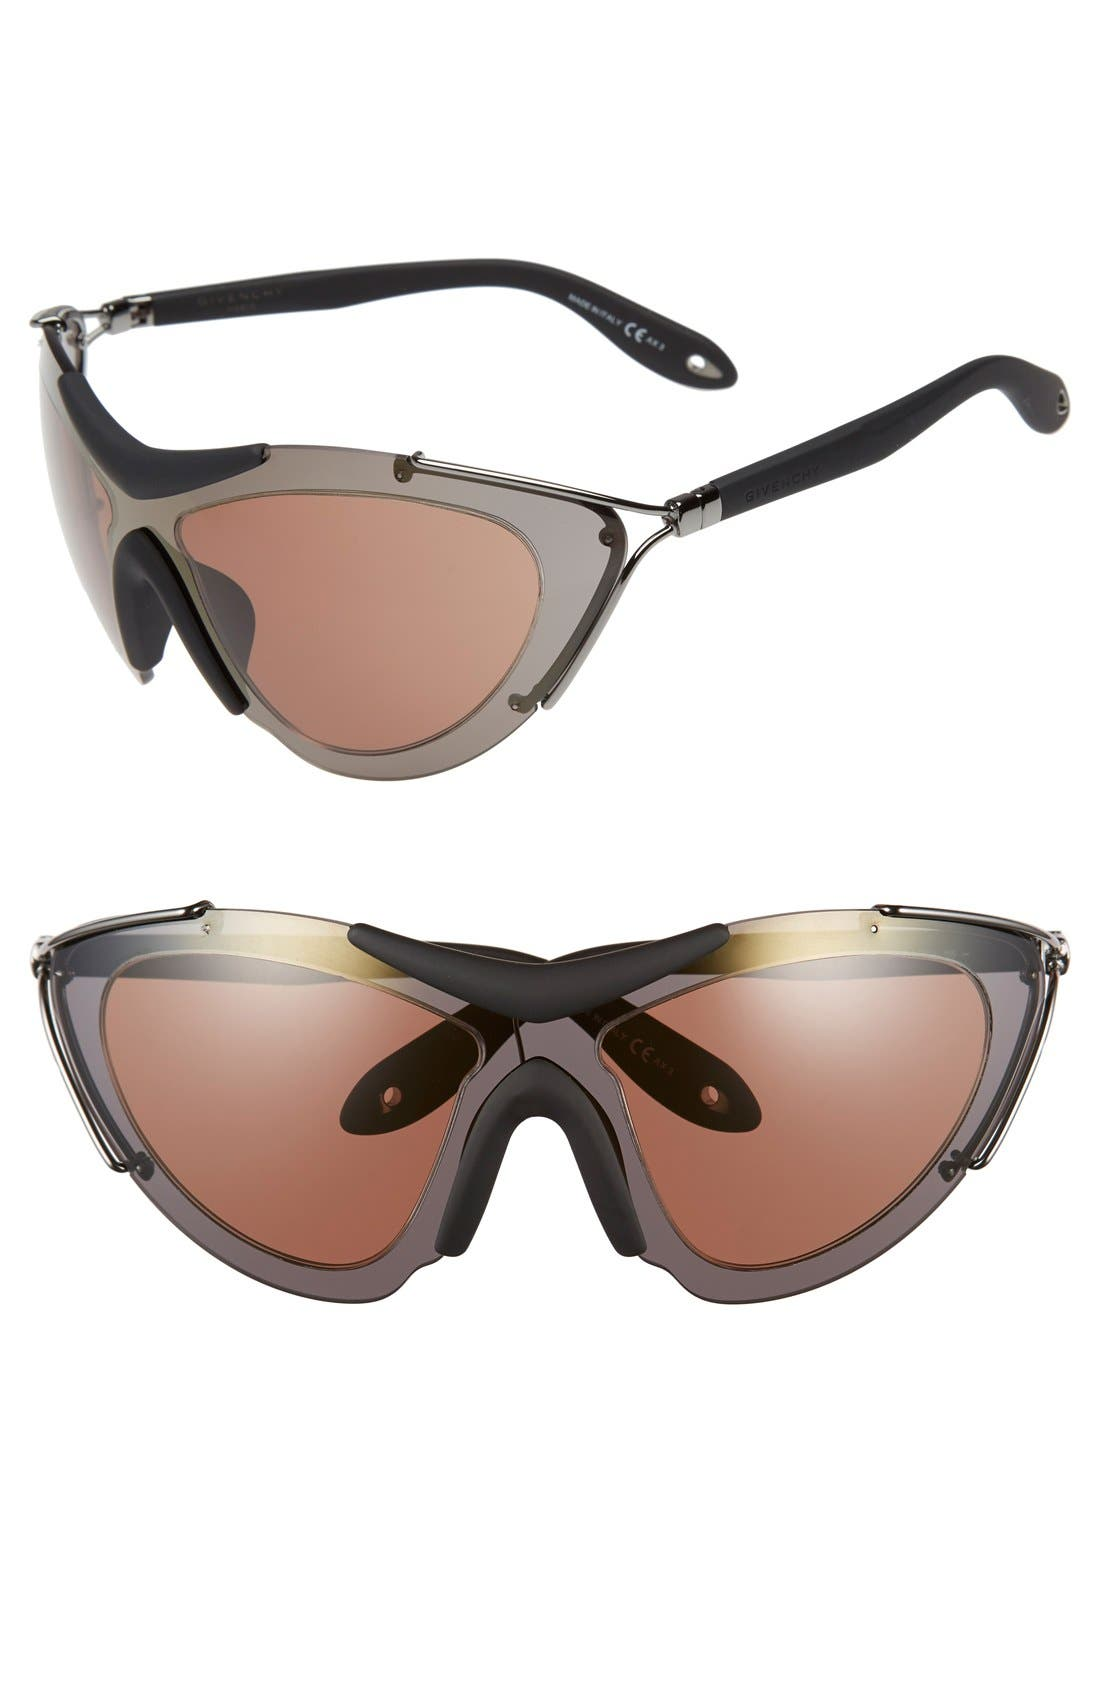 GIVENCHY '7013/S' 99mm Shield Sunglasses